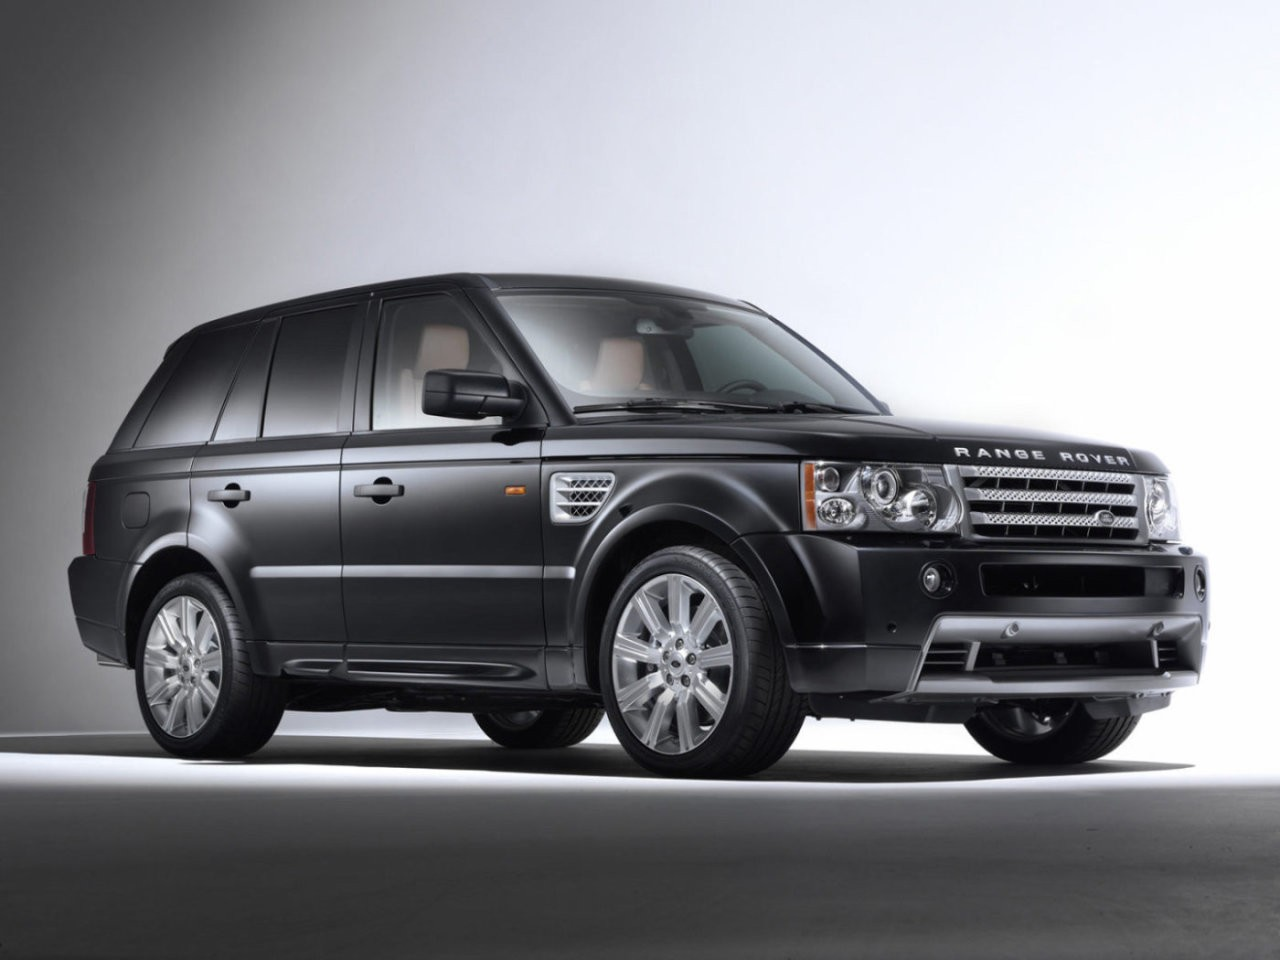 Problems and Recalls: L320 Range Rover Sport (2005-13) on